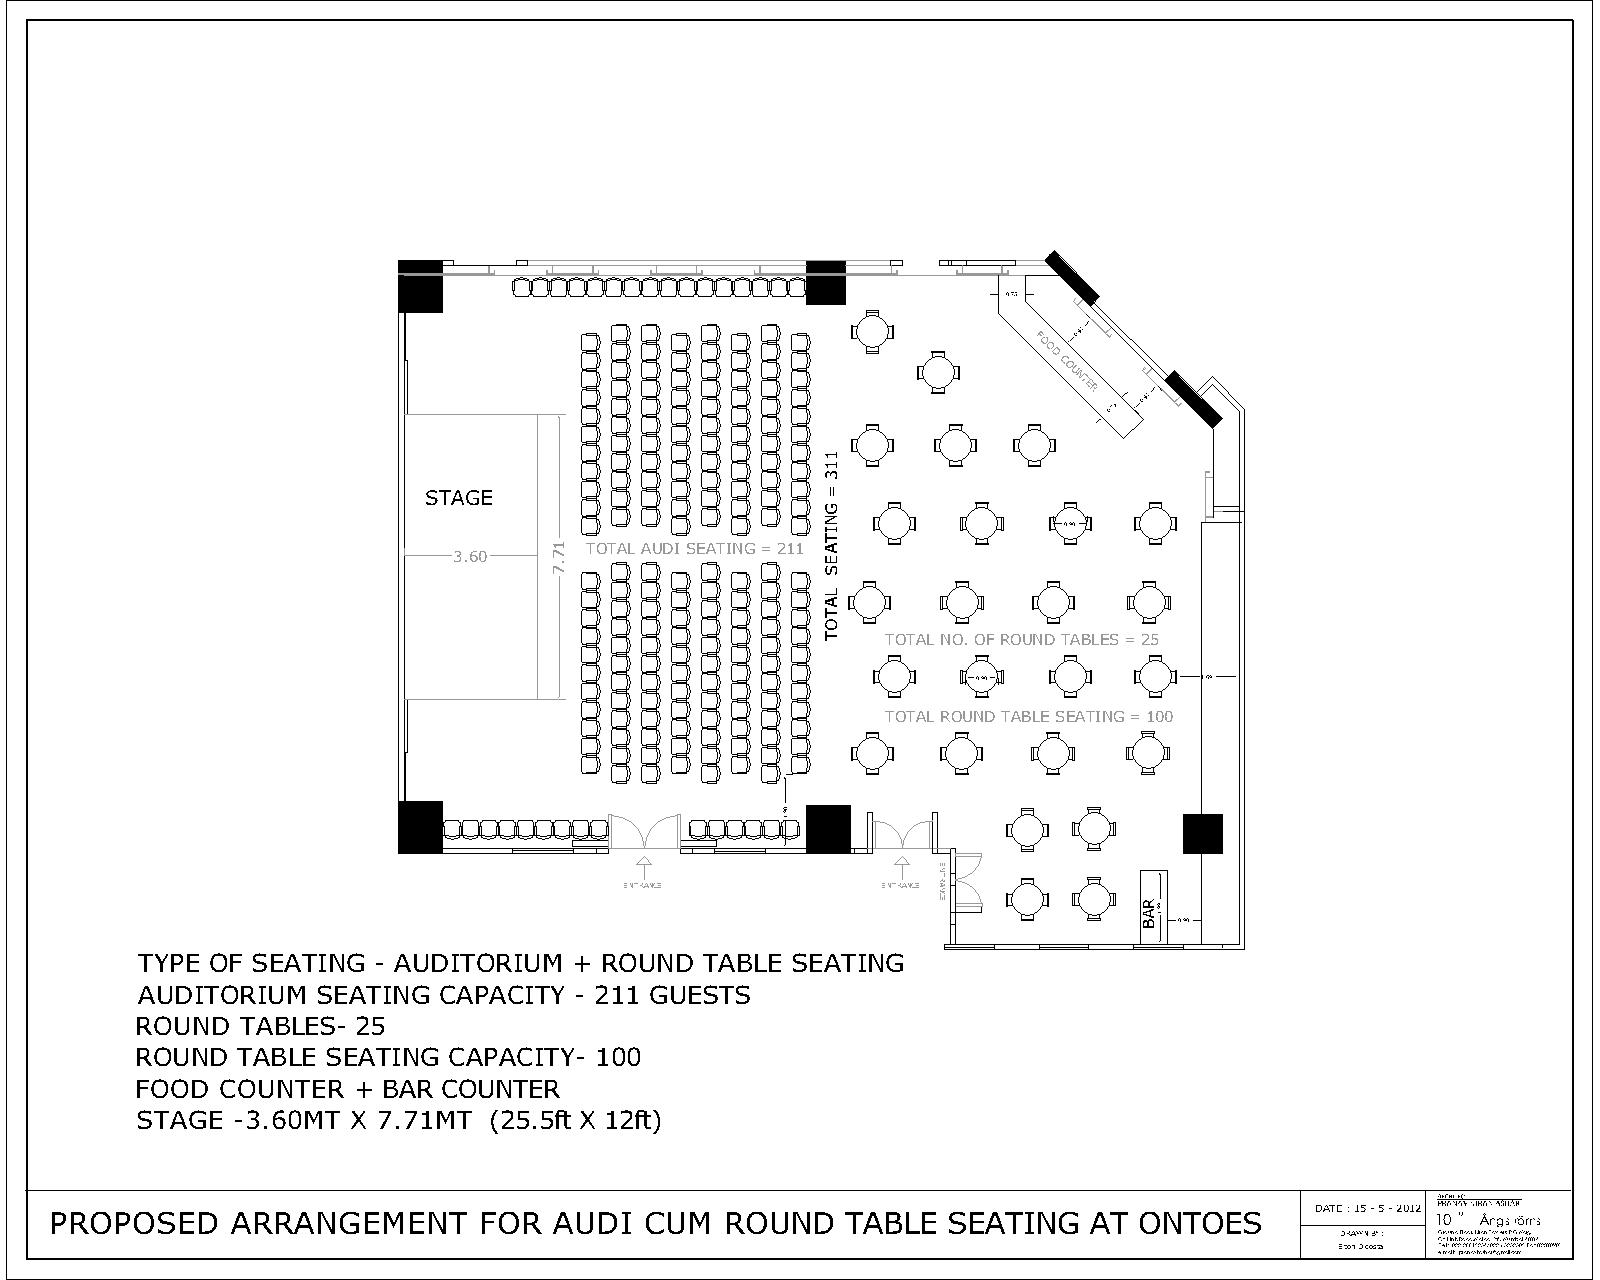 Round Table Seating Capacity One Up Banquets Mumbai An Introduction Wwwbanquethallin